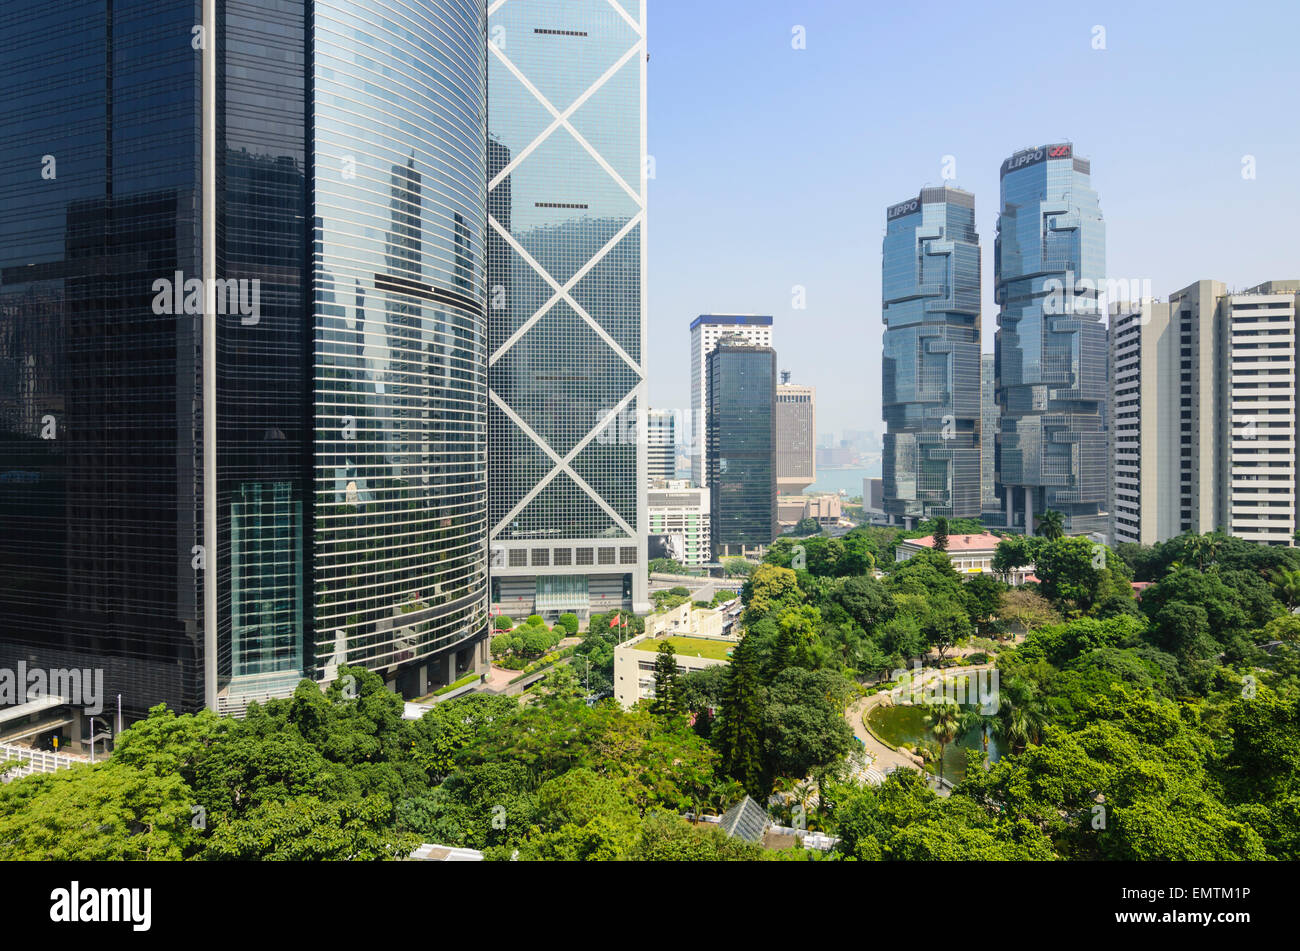 citibank in china Citibank is the consumer division of financial services multinational citigroup citibank china citibank (hong kong) citibank india citibank indonesia citibank malaysia bank handlowy citibank singapore citibank uganda grupo financiero banamex.